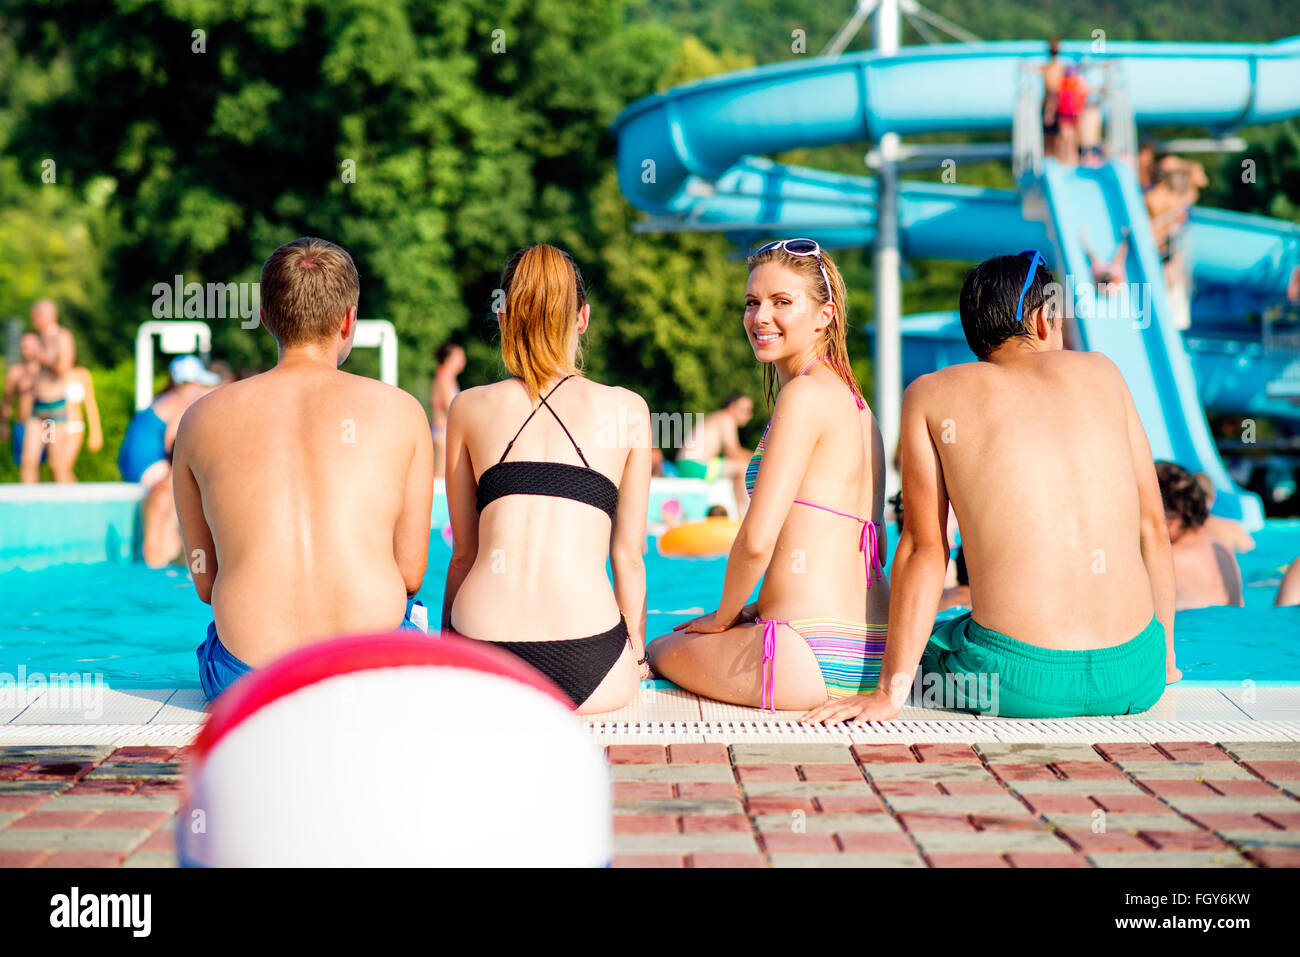 Two couples sunbathing at the swimming pool. Summer heat. - Stock Image